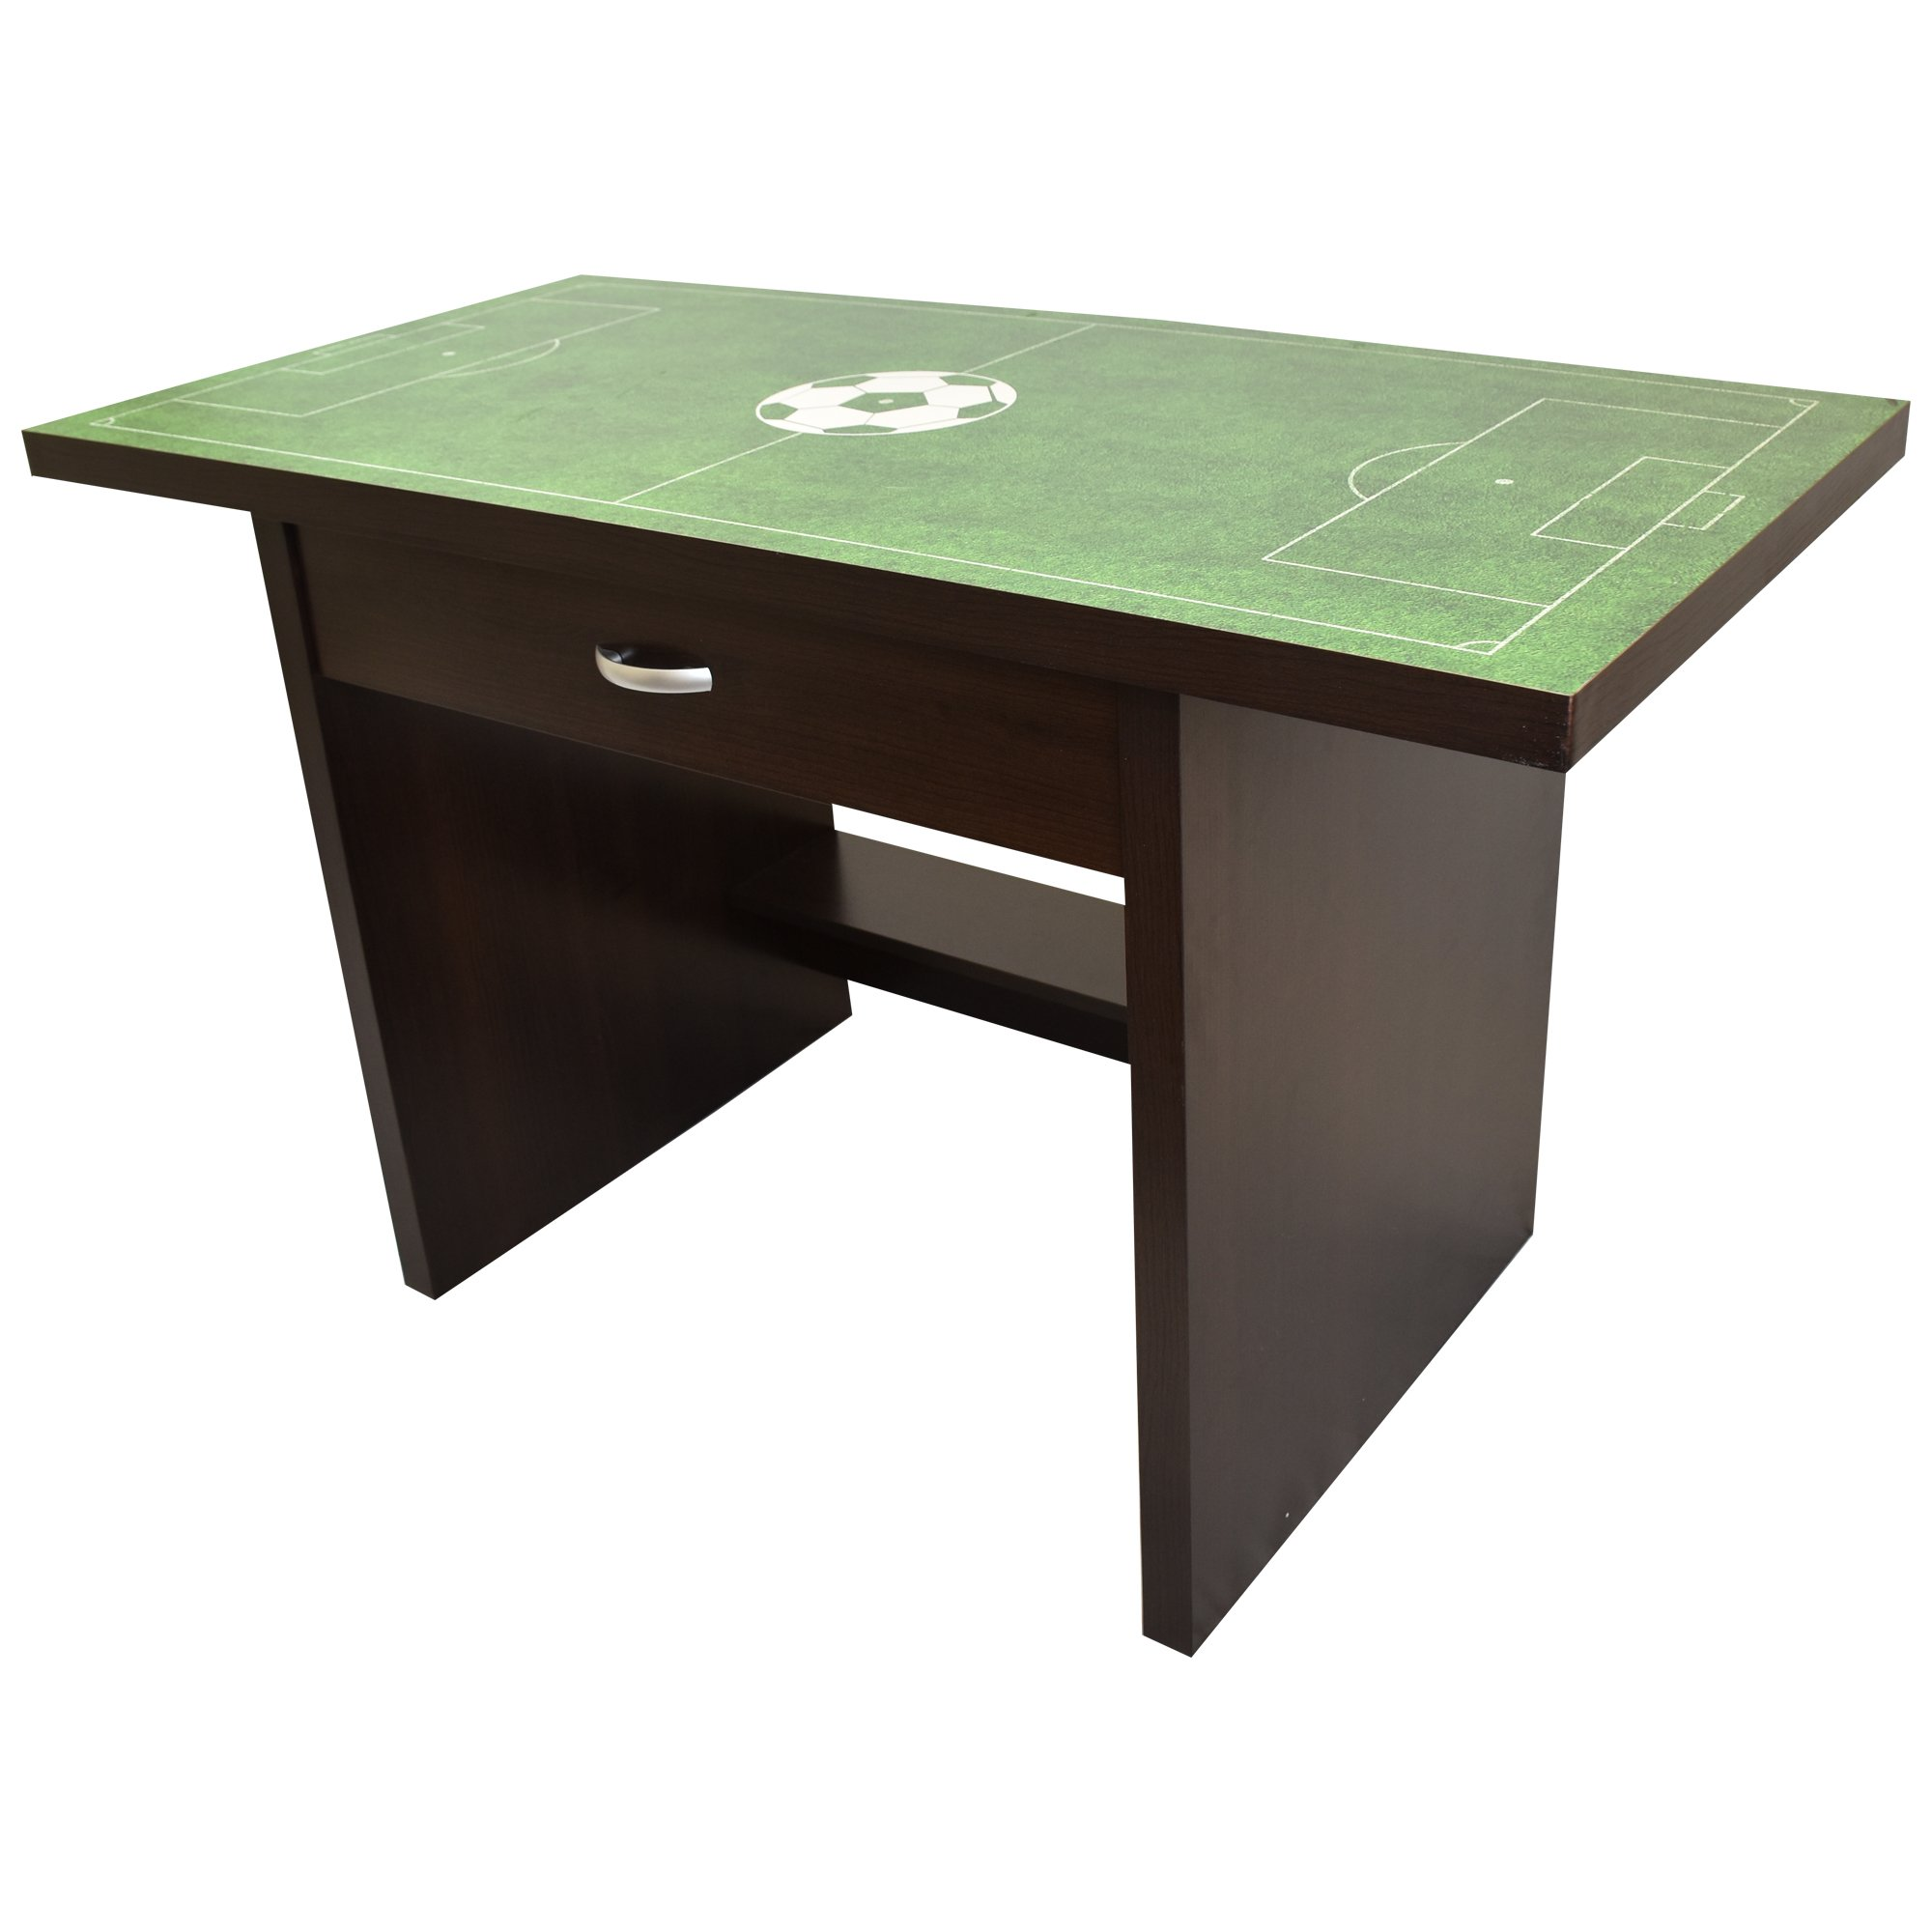 Kids Soccer Sports Fan Desk, Wooden Construction with Drawer, Glossy Finish and Easy to Clean, 35'' by Rack Furniture